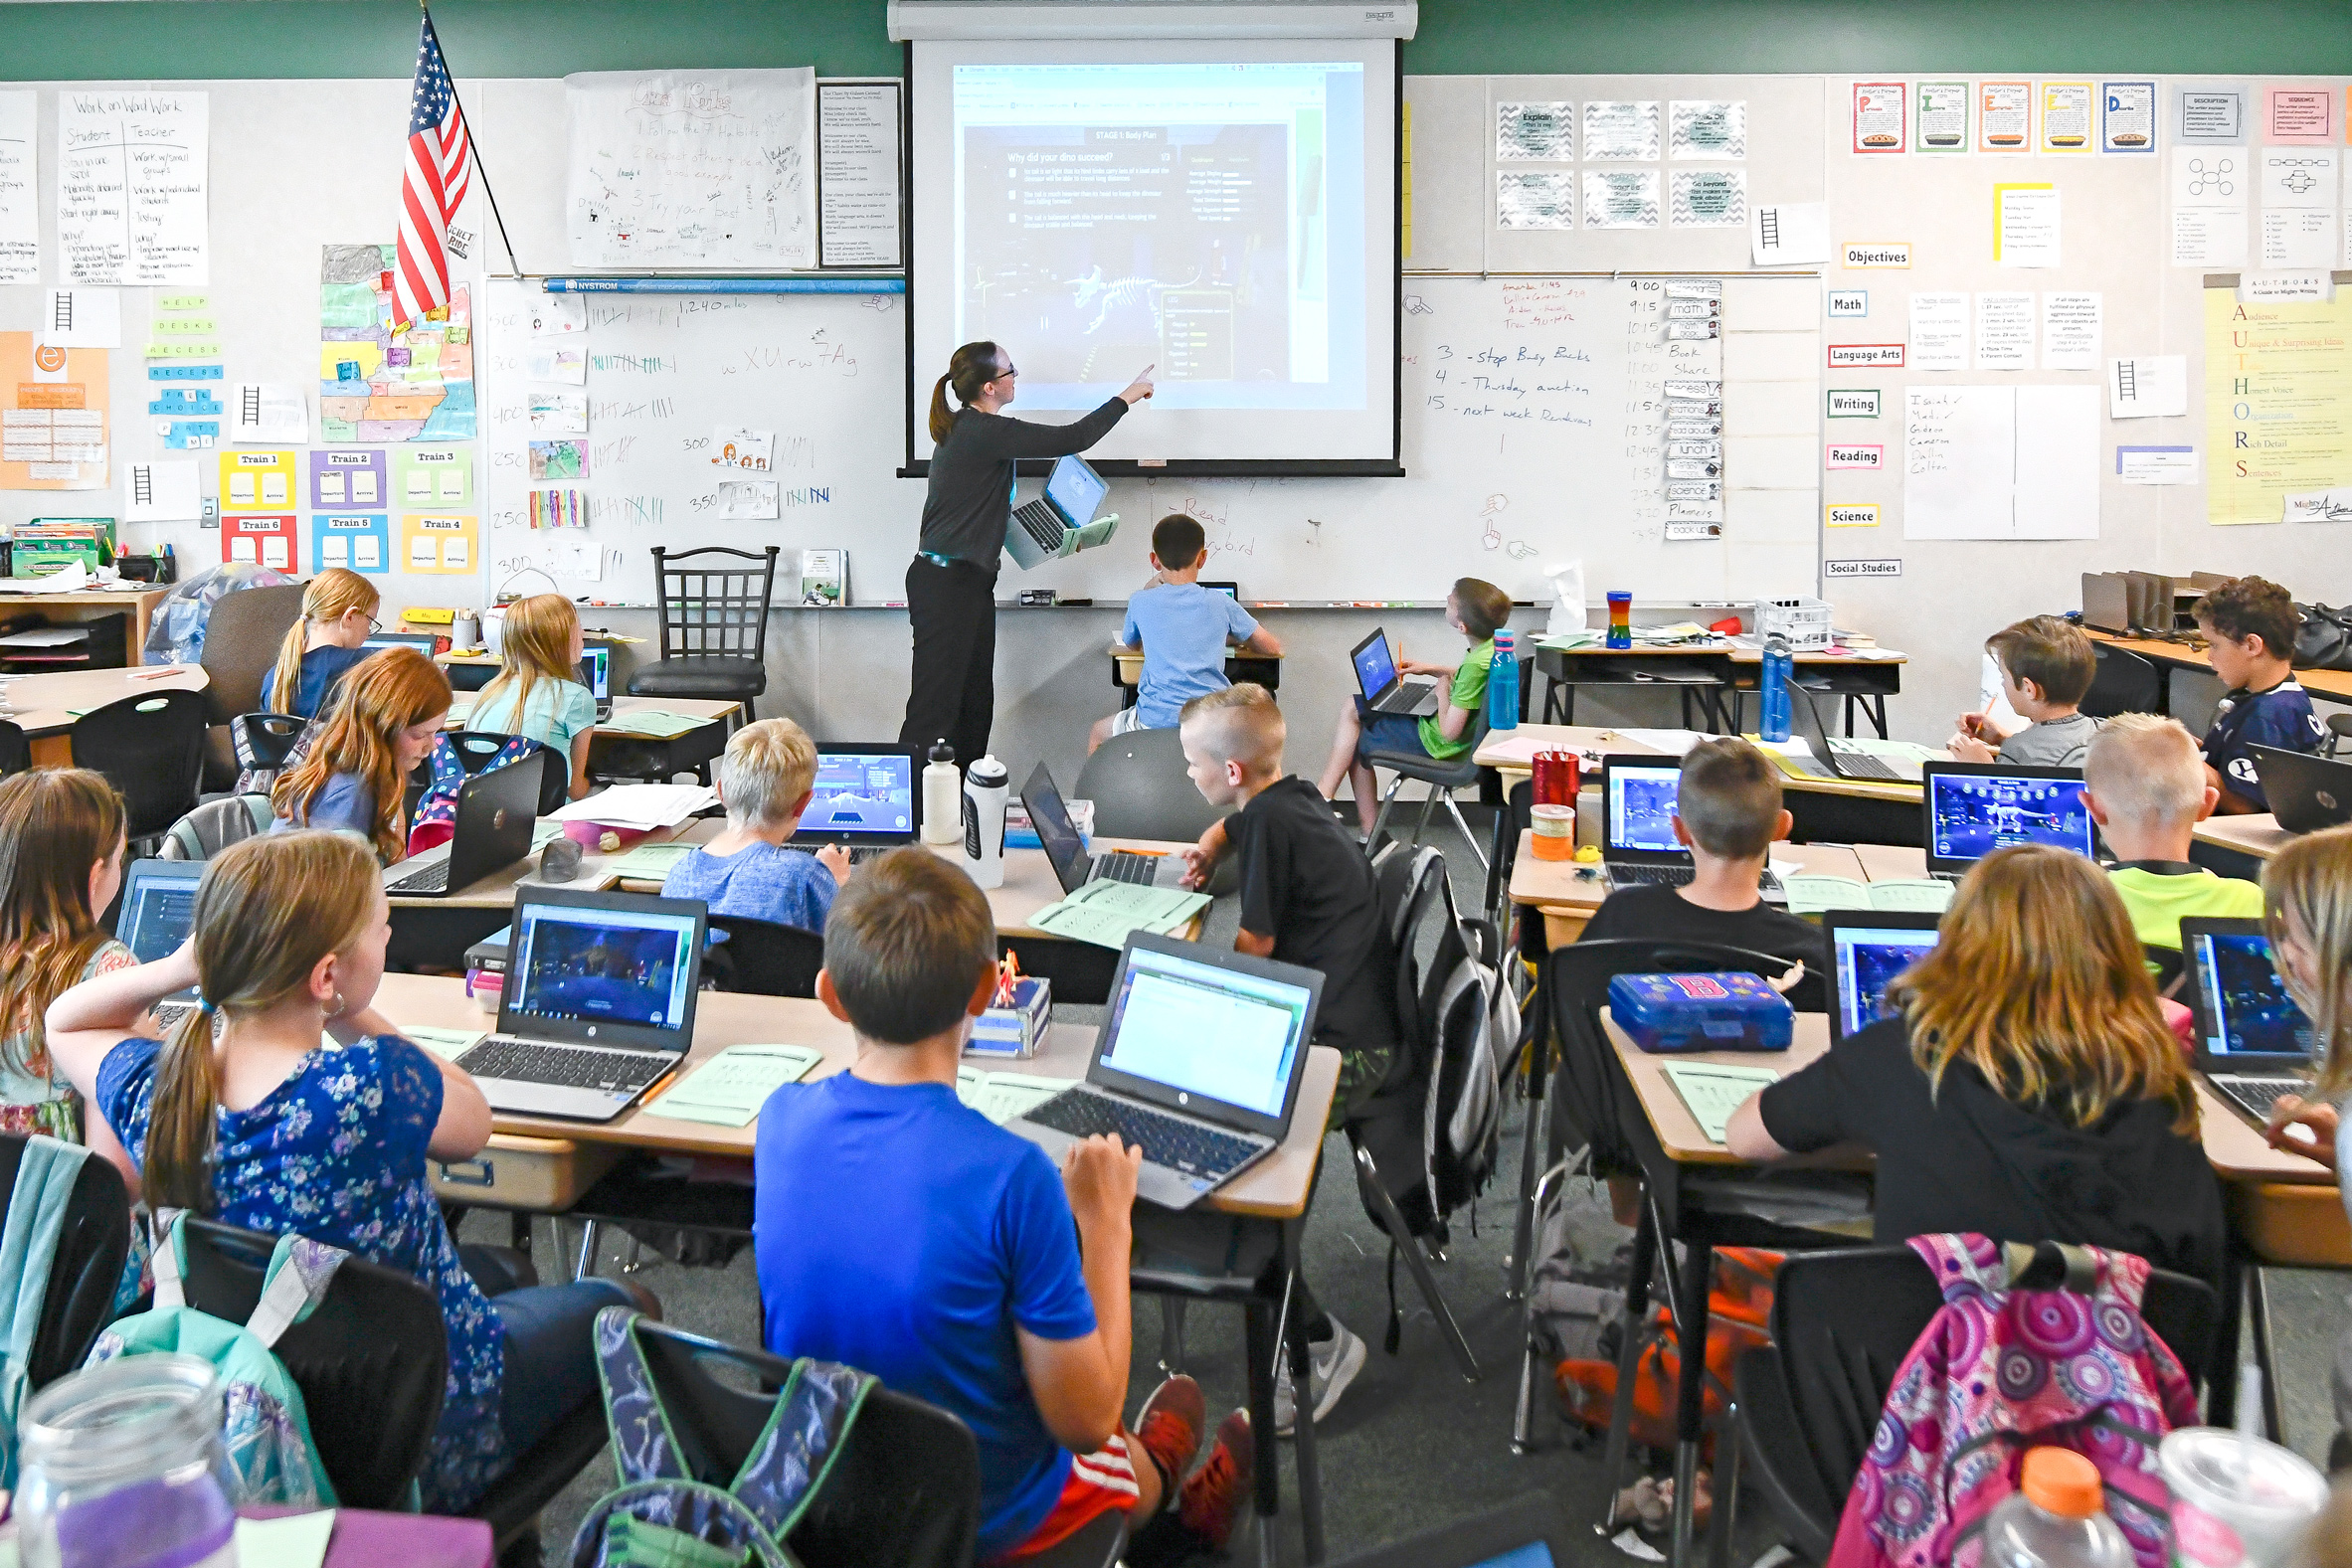 Teacher and students discuss Research Quest in classroom.